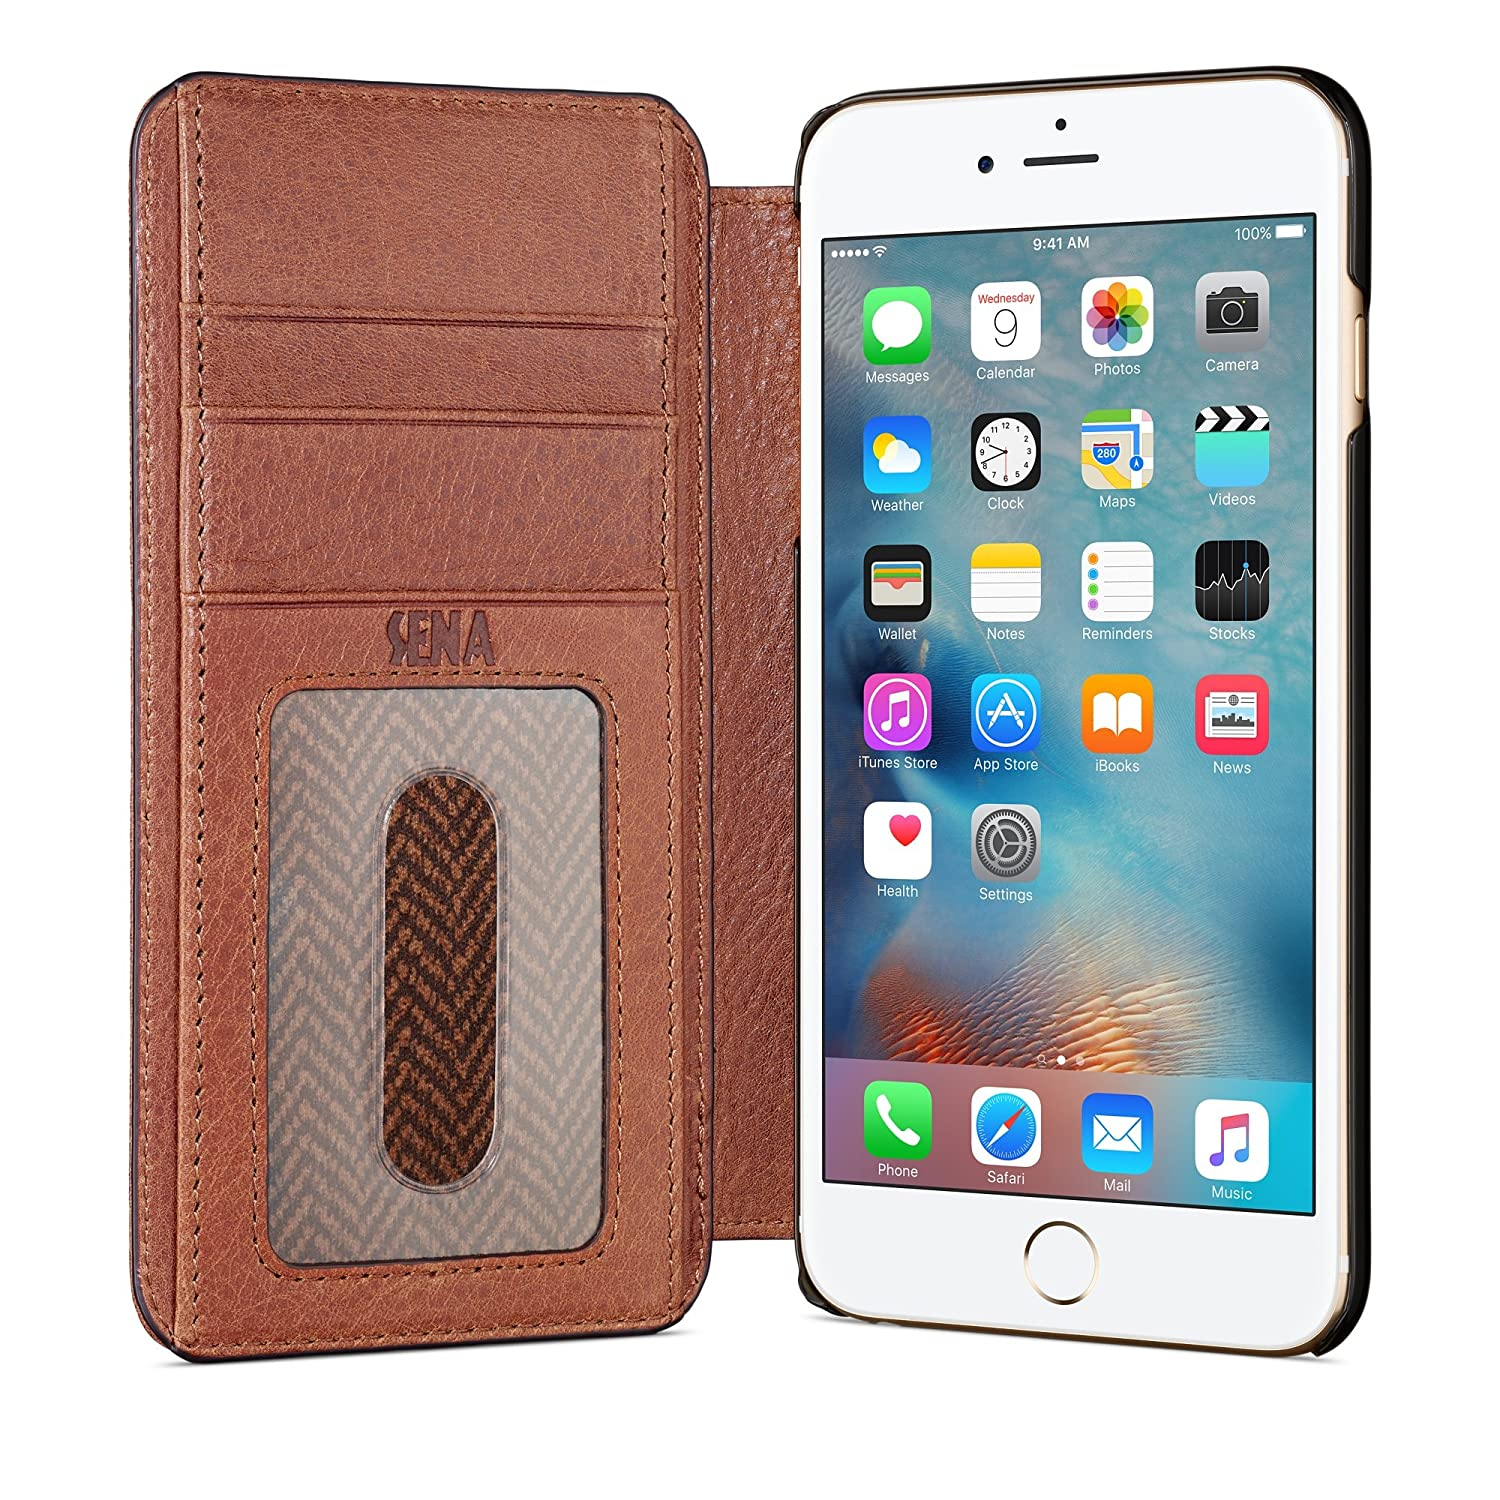 sneakers for cheap f58bf 0c6c0 Sena Ultra Thin Wallet Book , Thinnest book style wallet case solution for  the iphone 6 PLUS & 6s PLUS